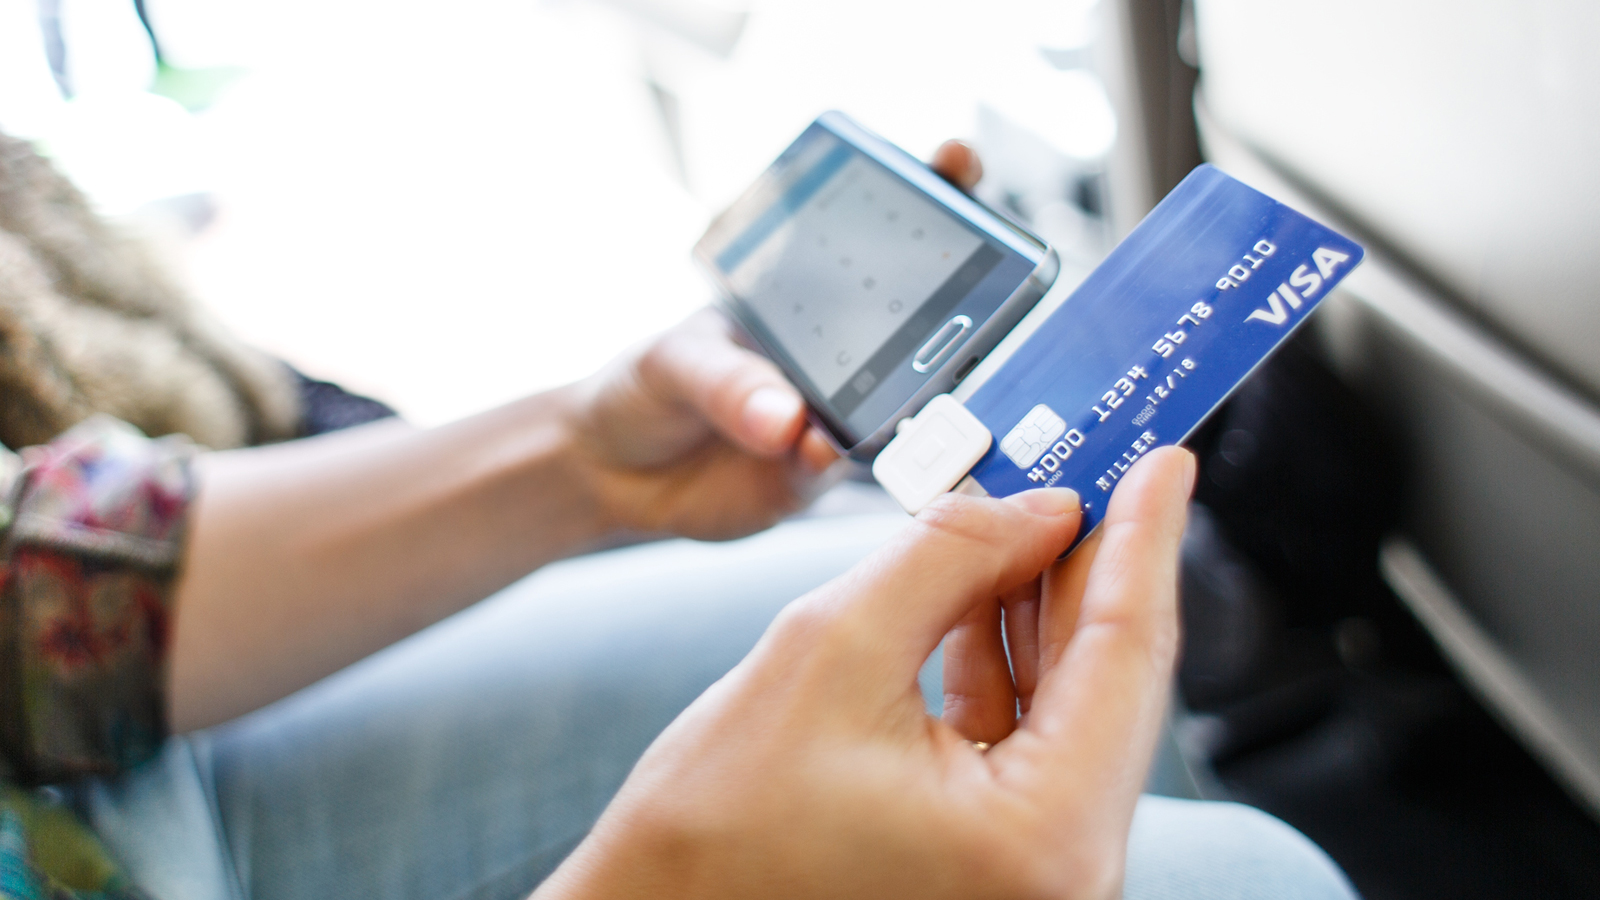 Square payment using Visa card